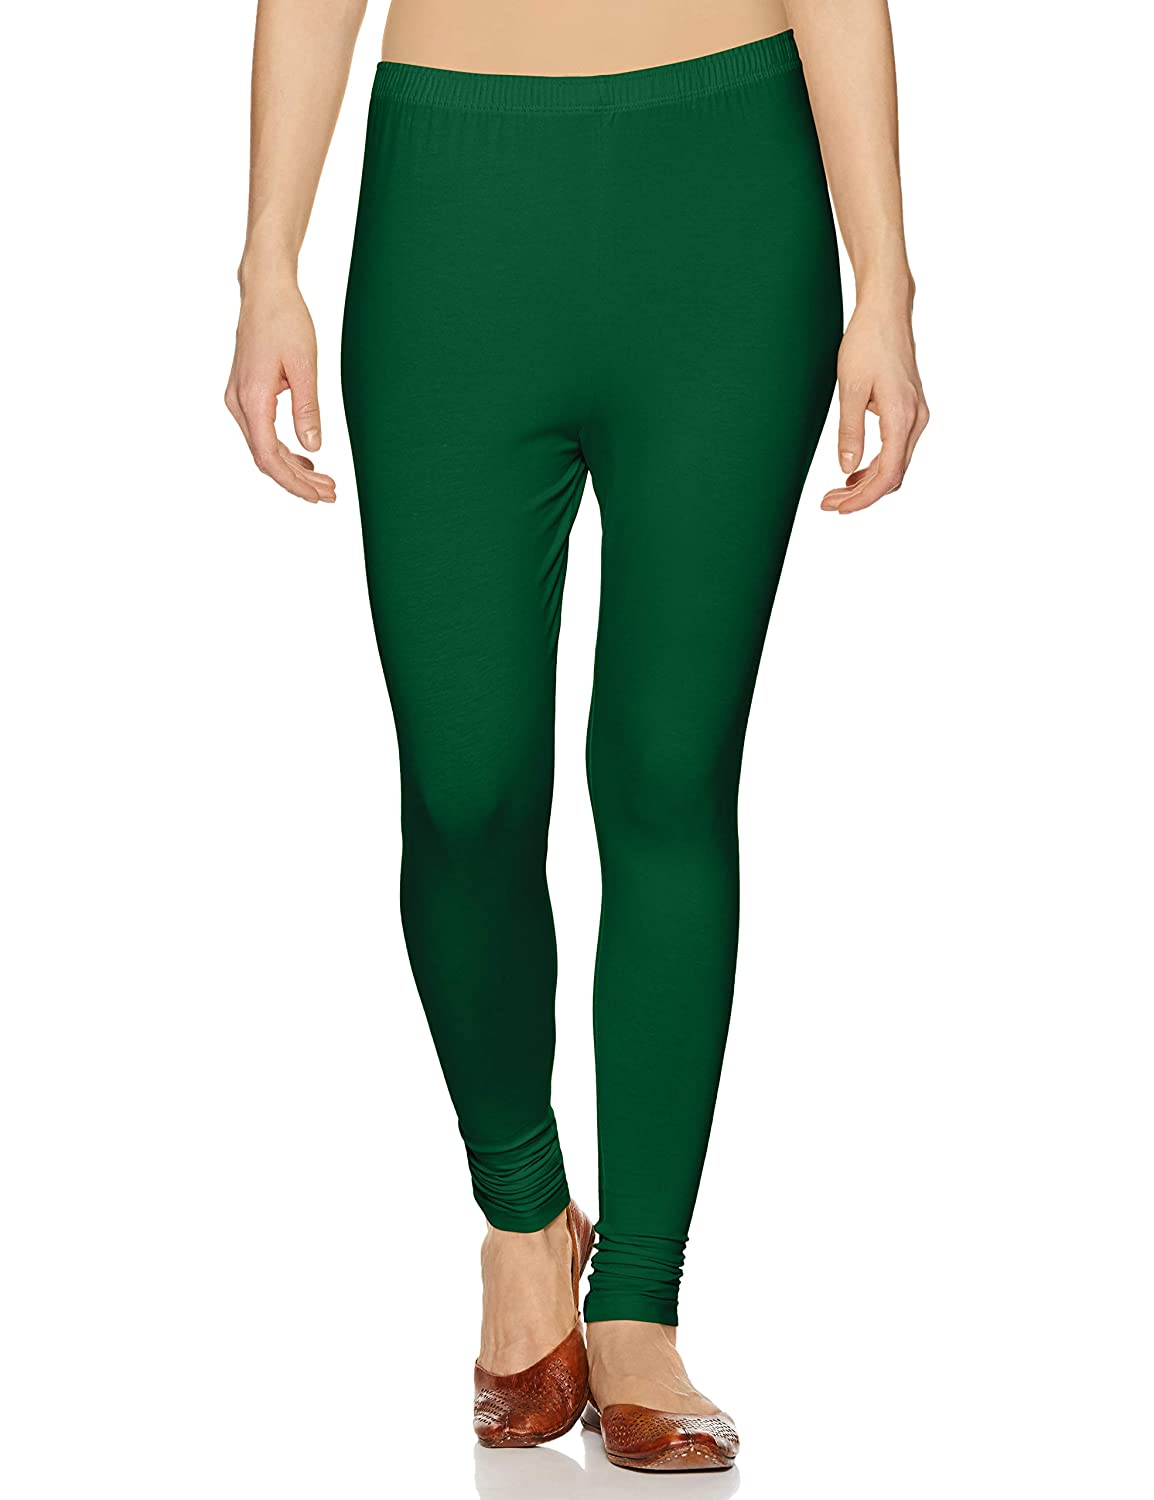 LUX LYRA Women's Leggings Ankle_20_FS_1PC_Rama Green_Free Size